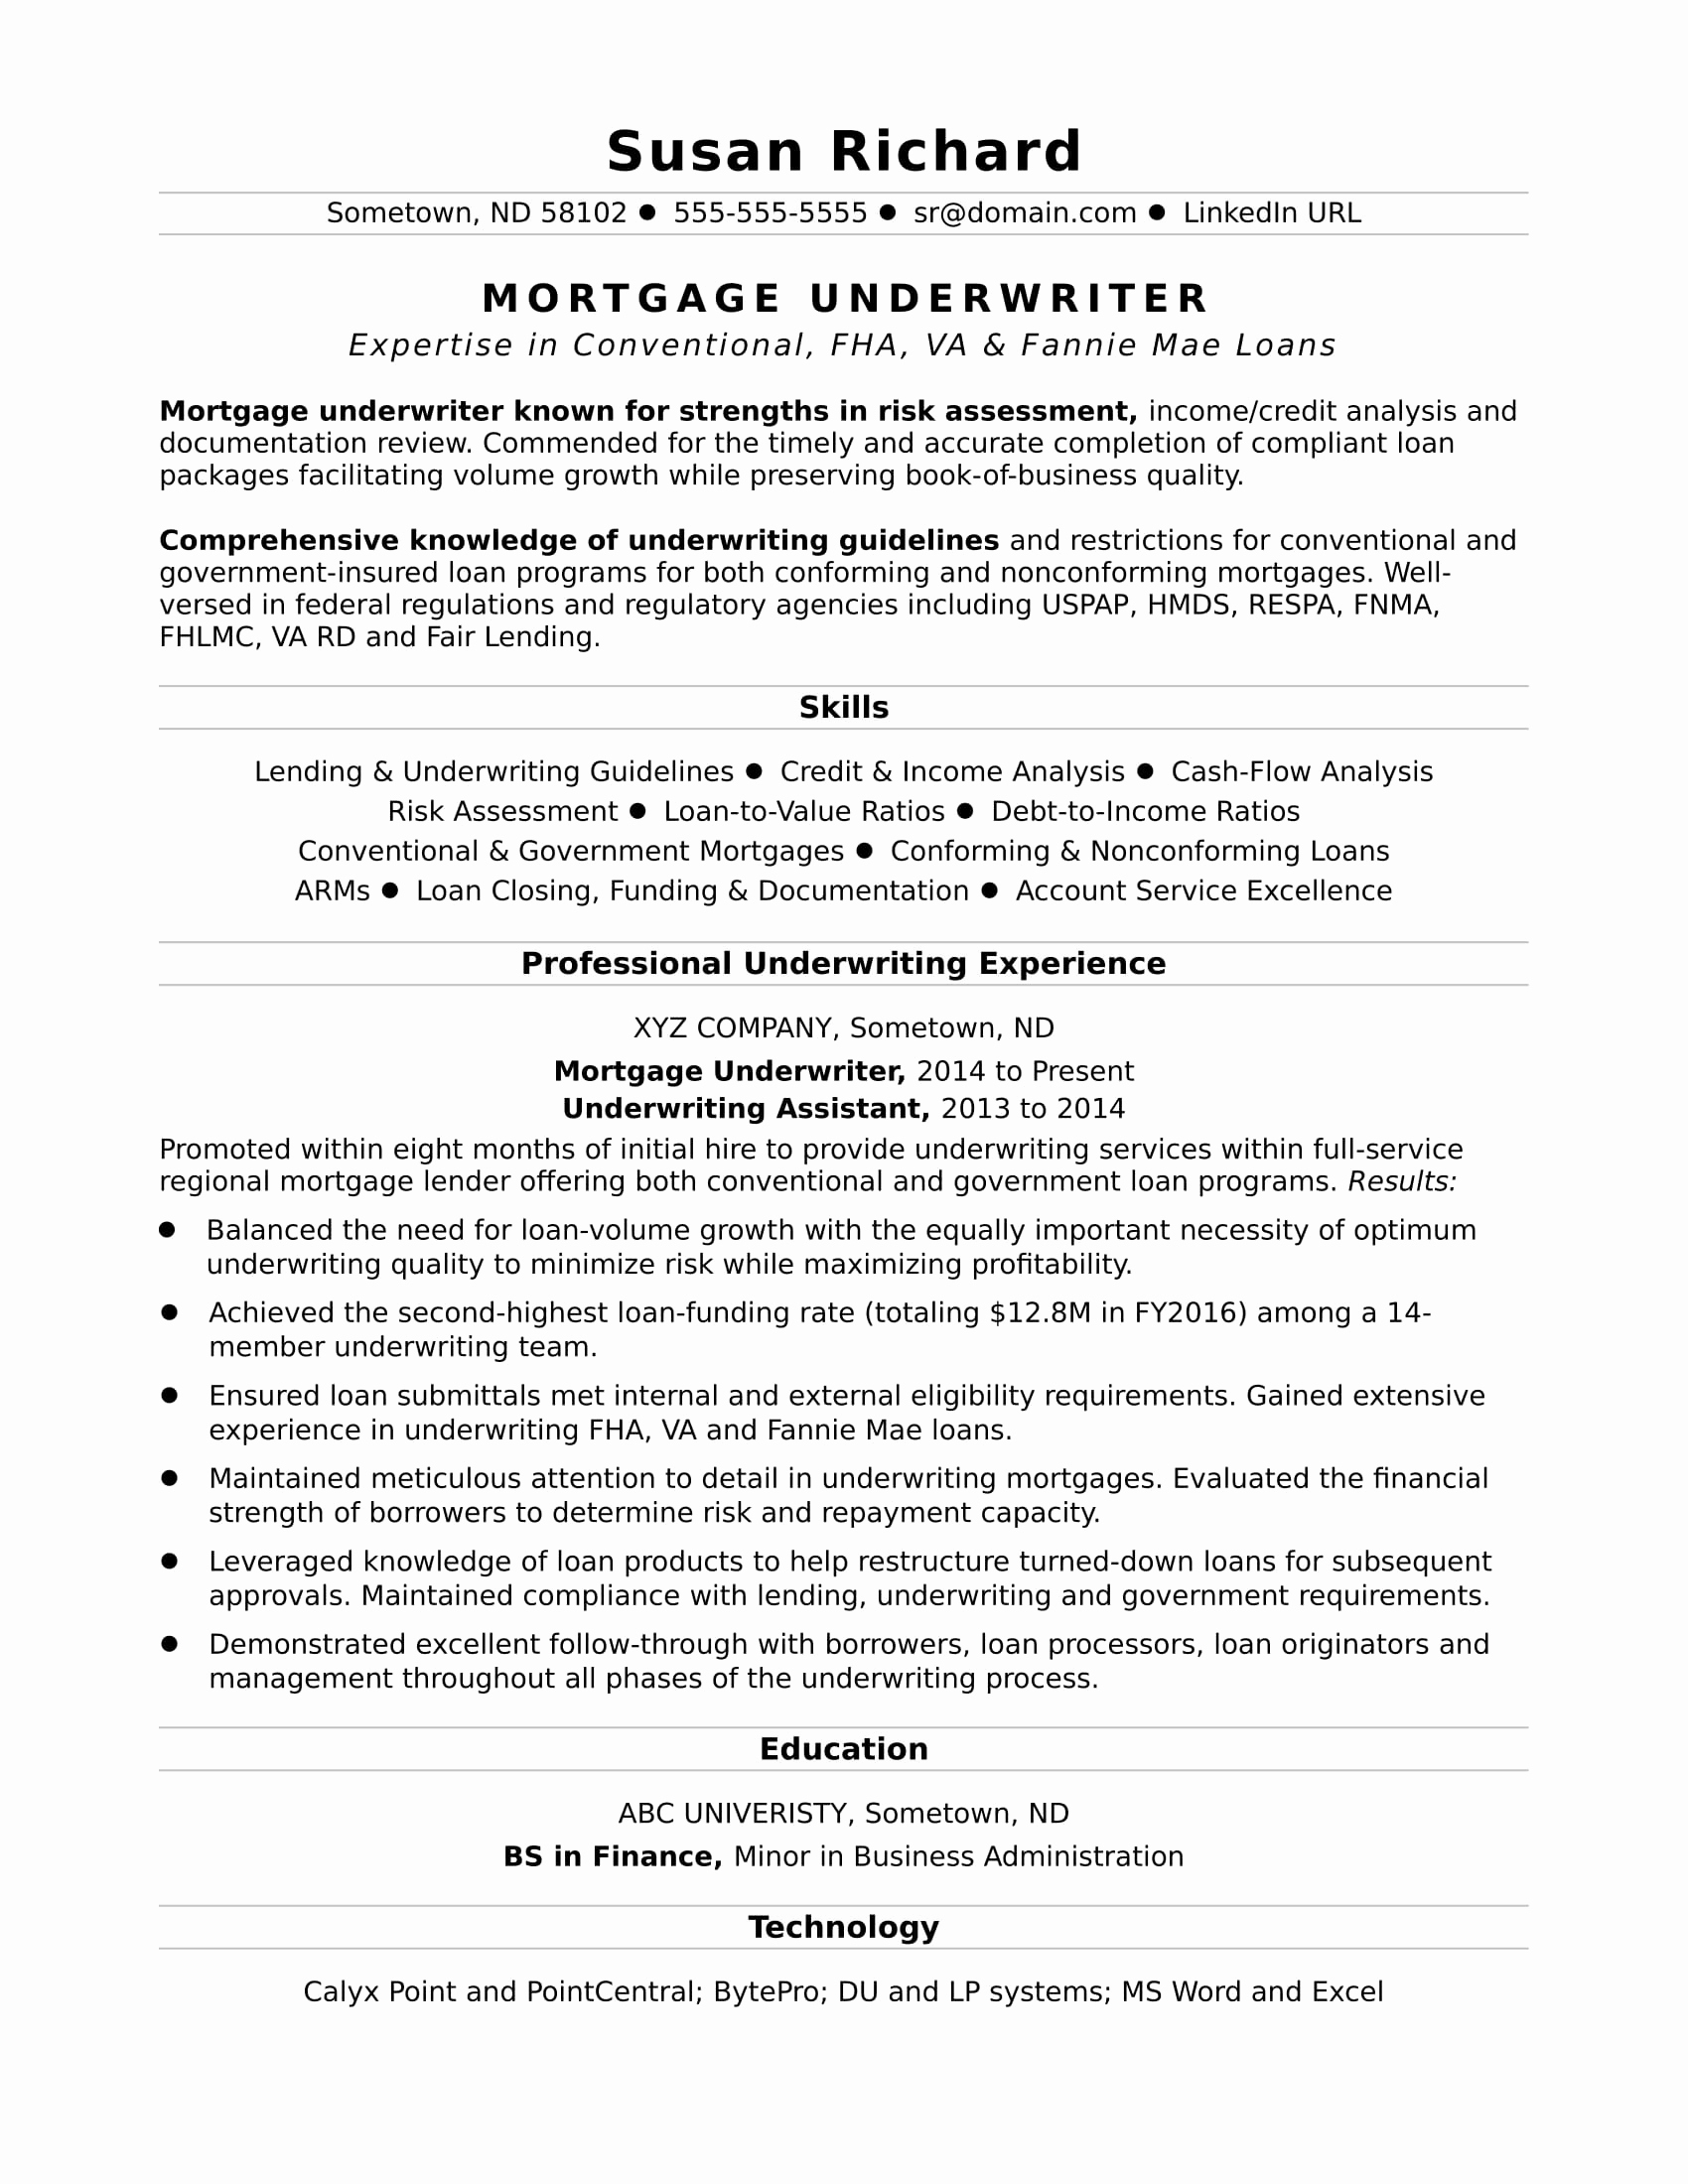 Linkedin Resume Search - Linkedin Cover Letter Template Examples